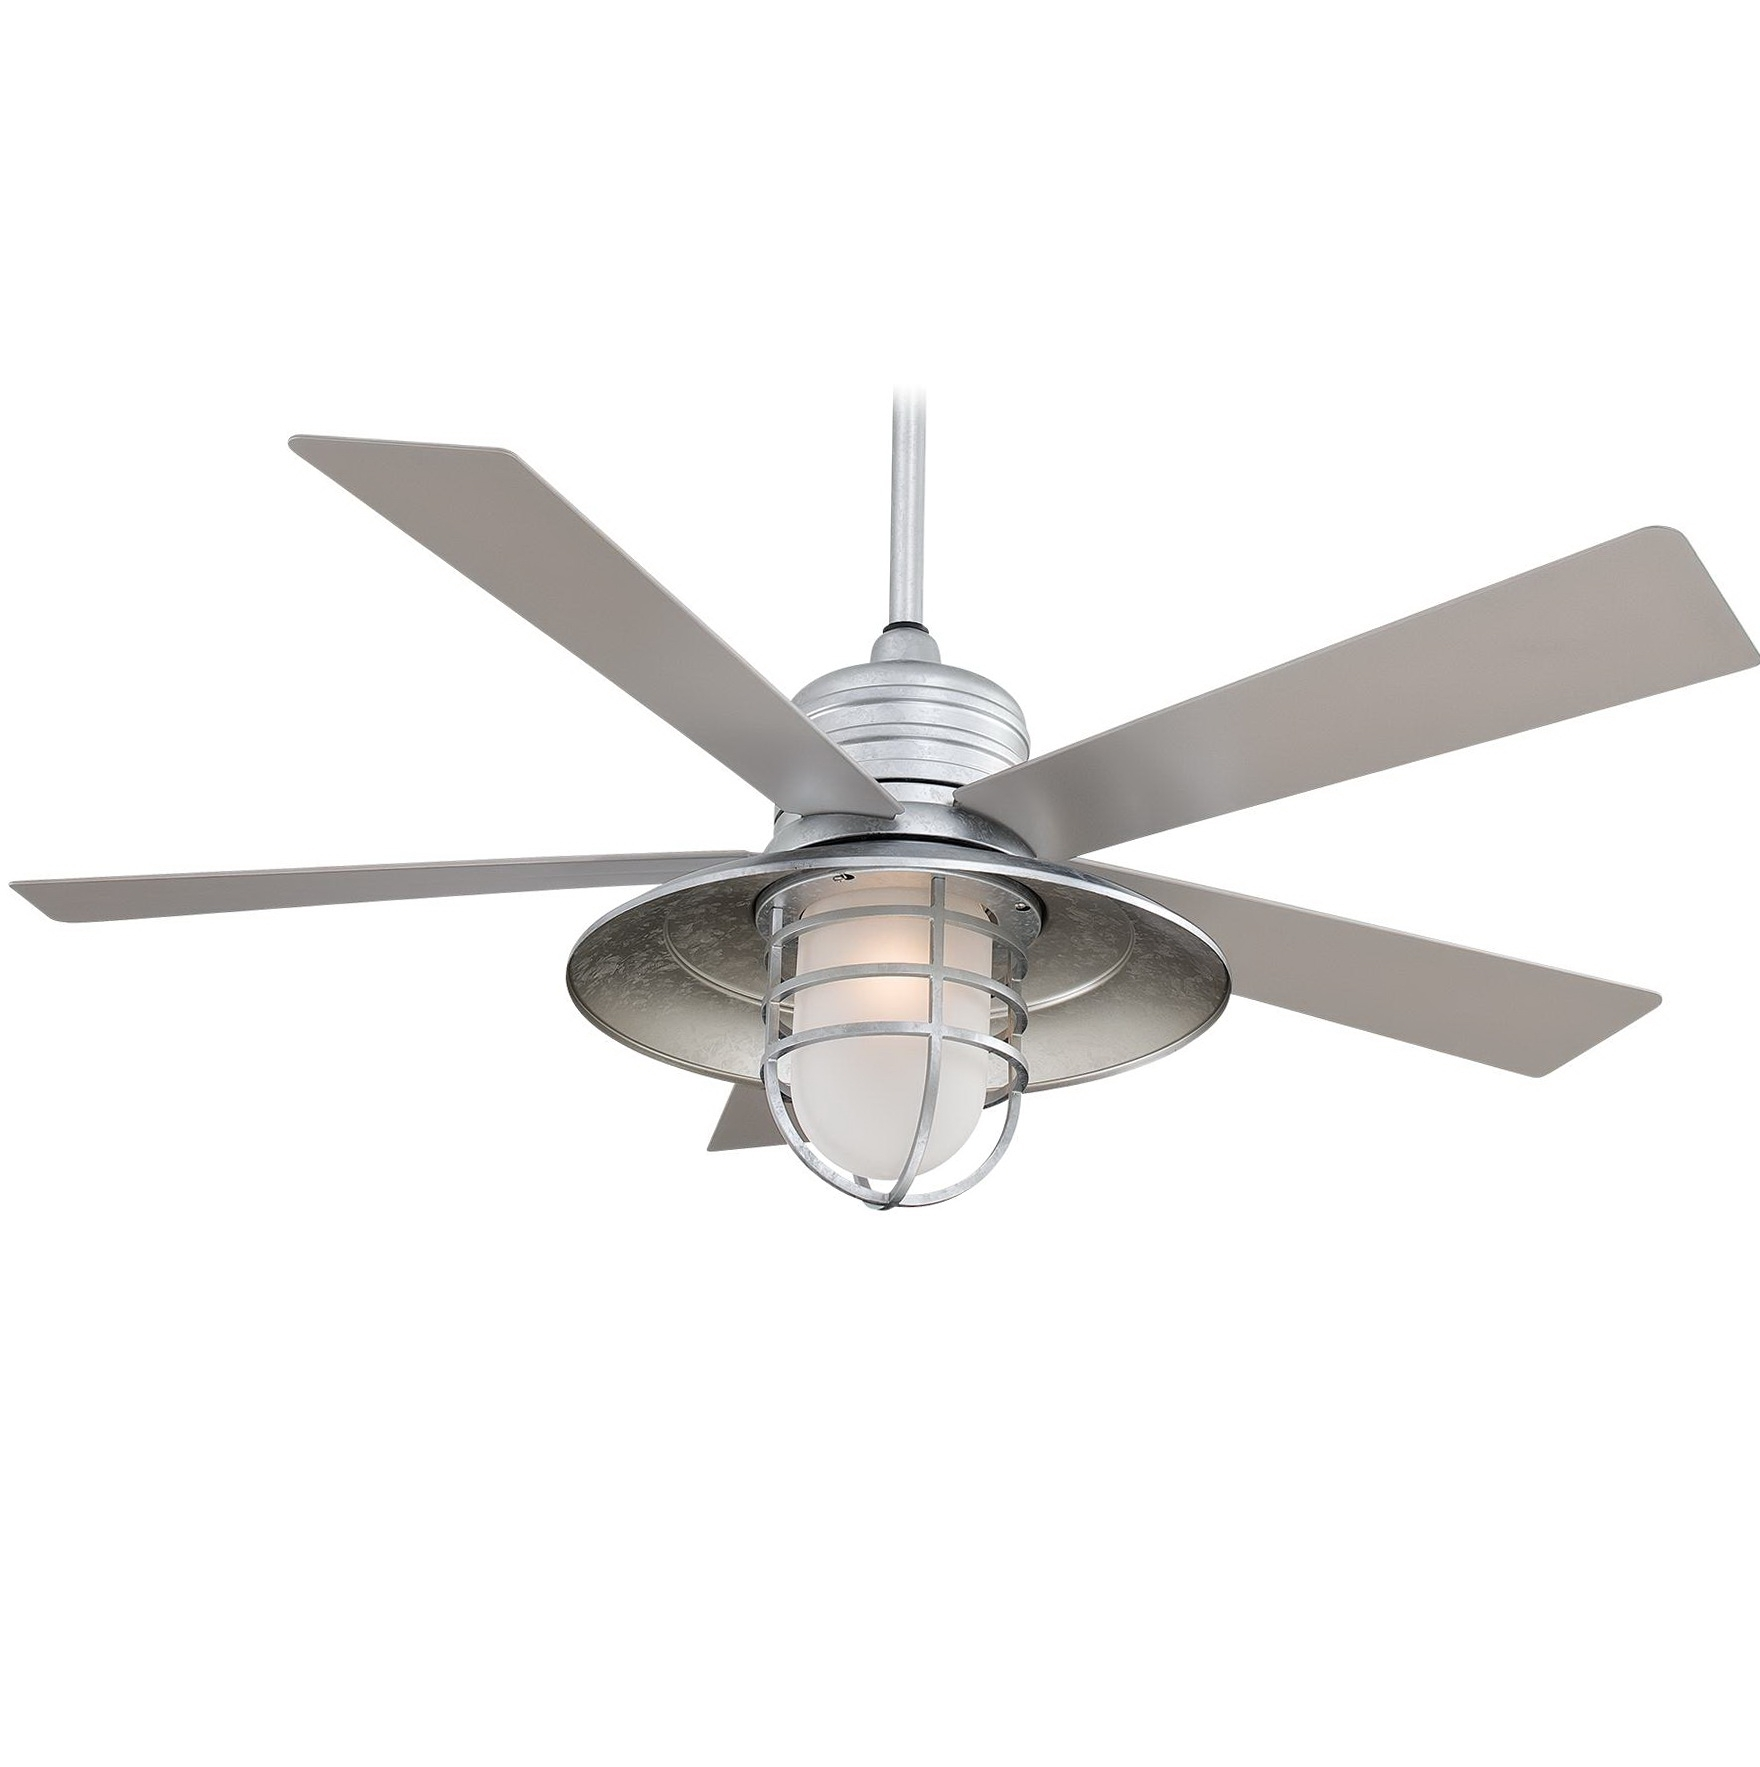 Modern Outdoor Ceiling Fans – Pixball Within 2018 Modern Outdoor Ceiling Fans With Lights (View 5 of 20)